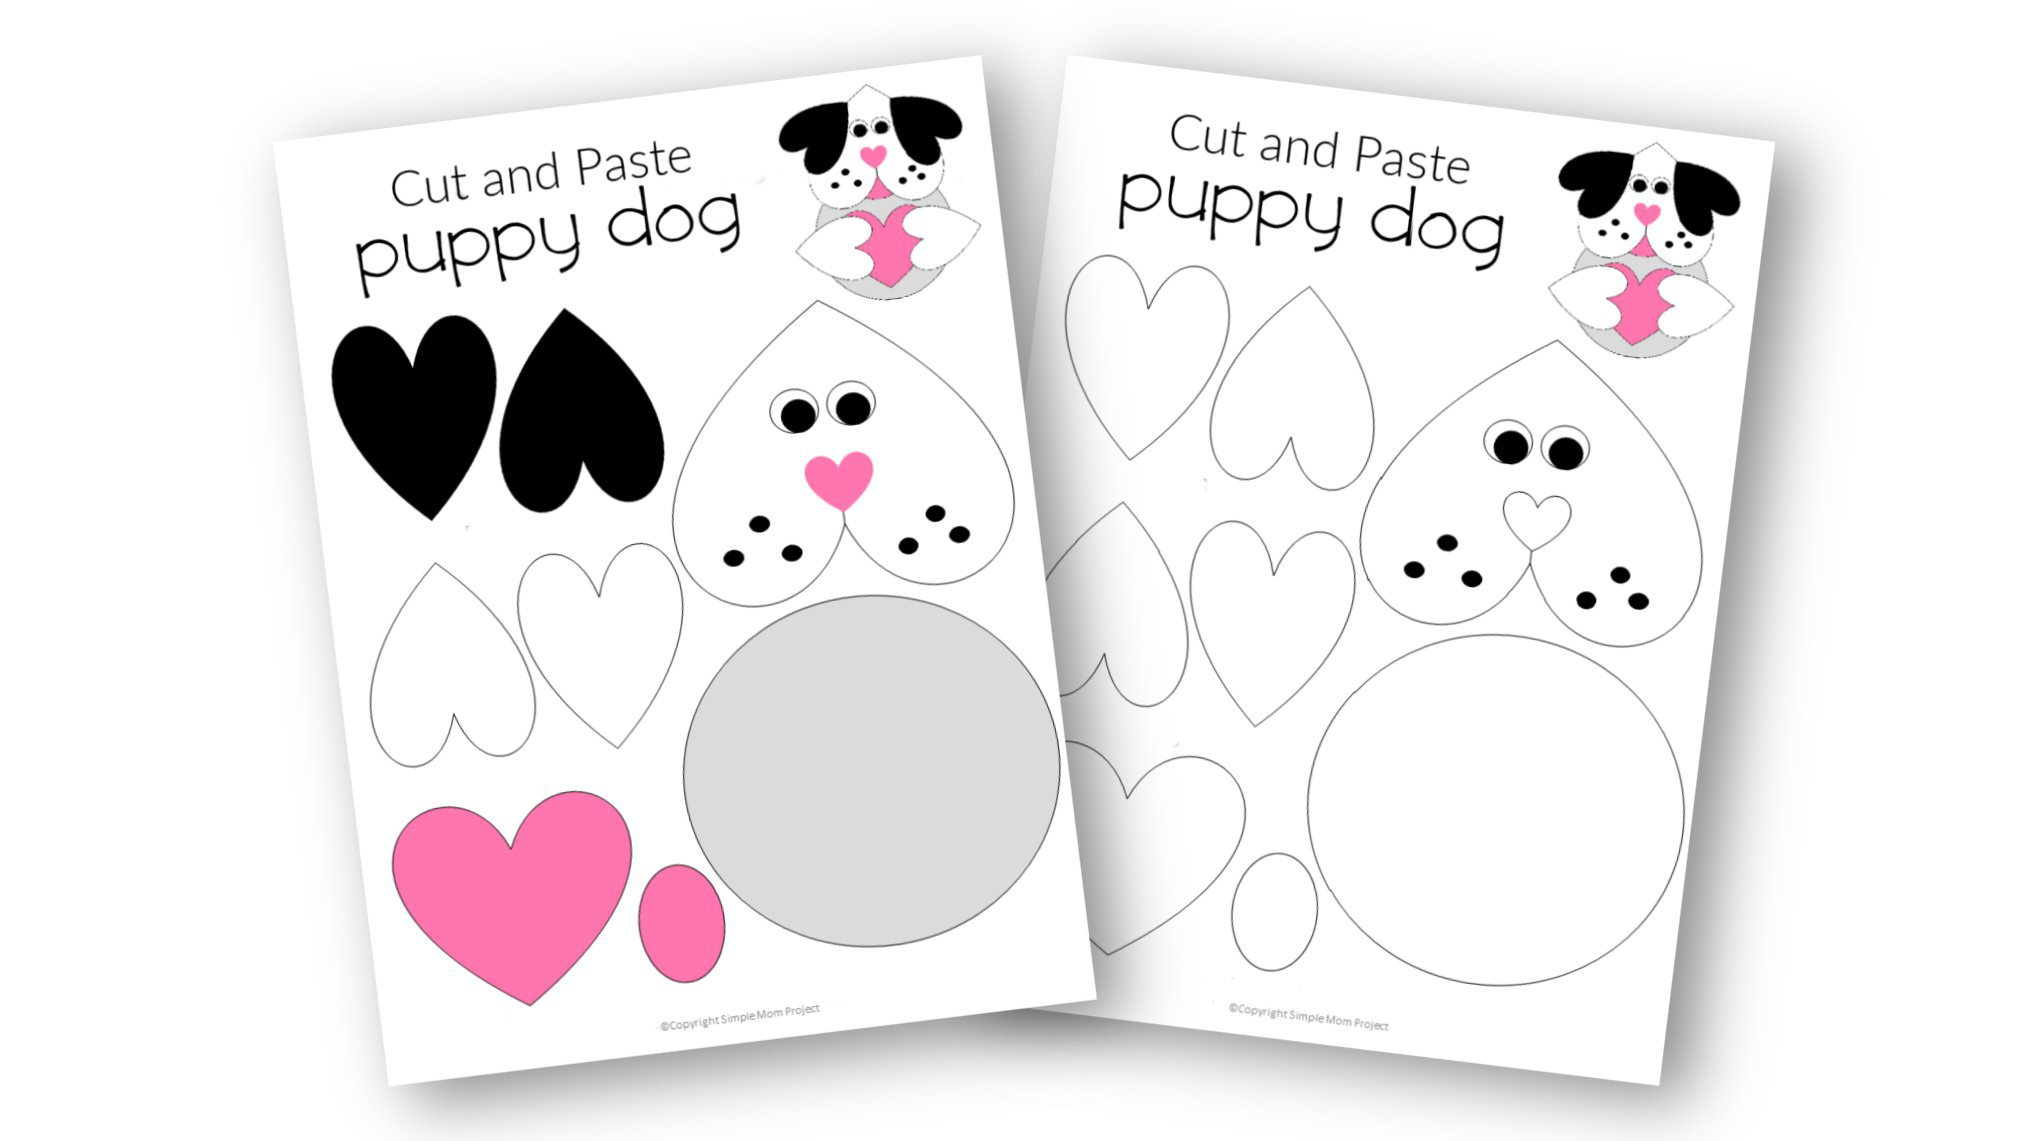 Easy Printable Diy Puppy Dog Craft for Preschool, toddler, kindergarten